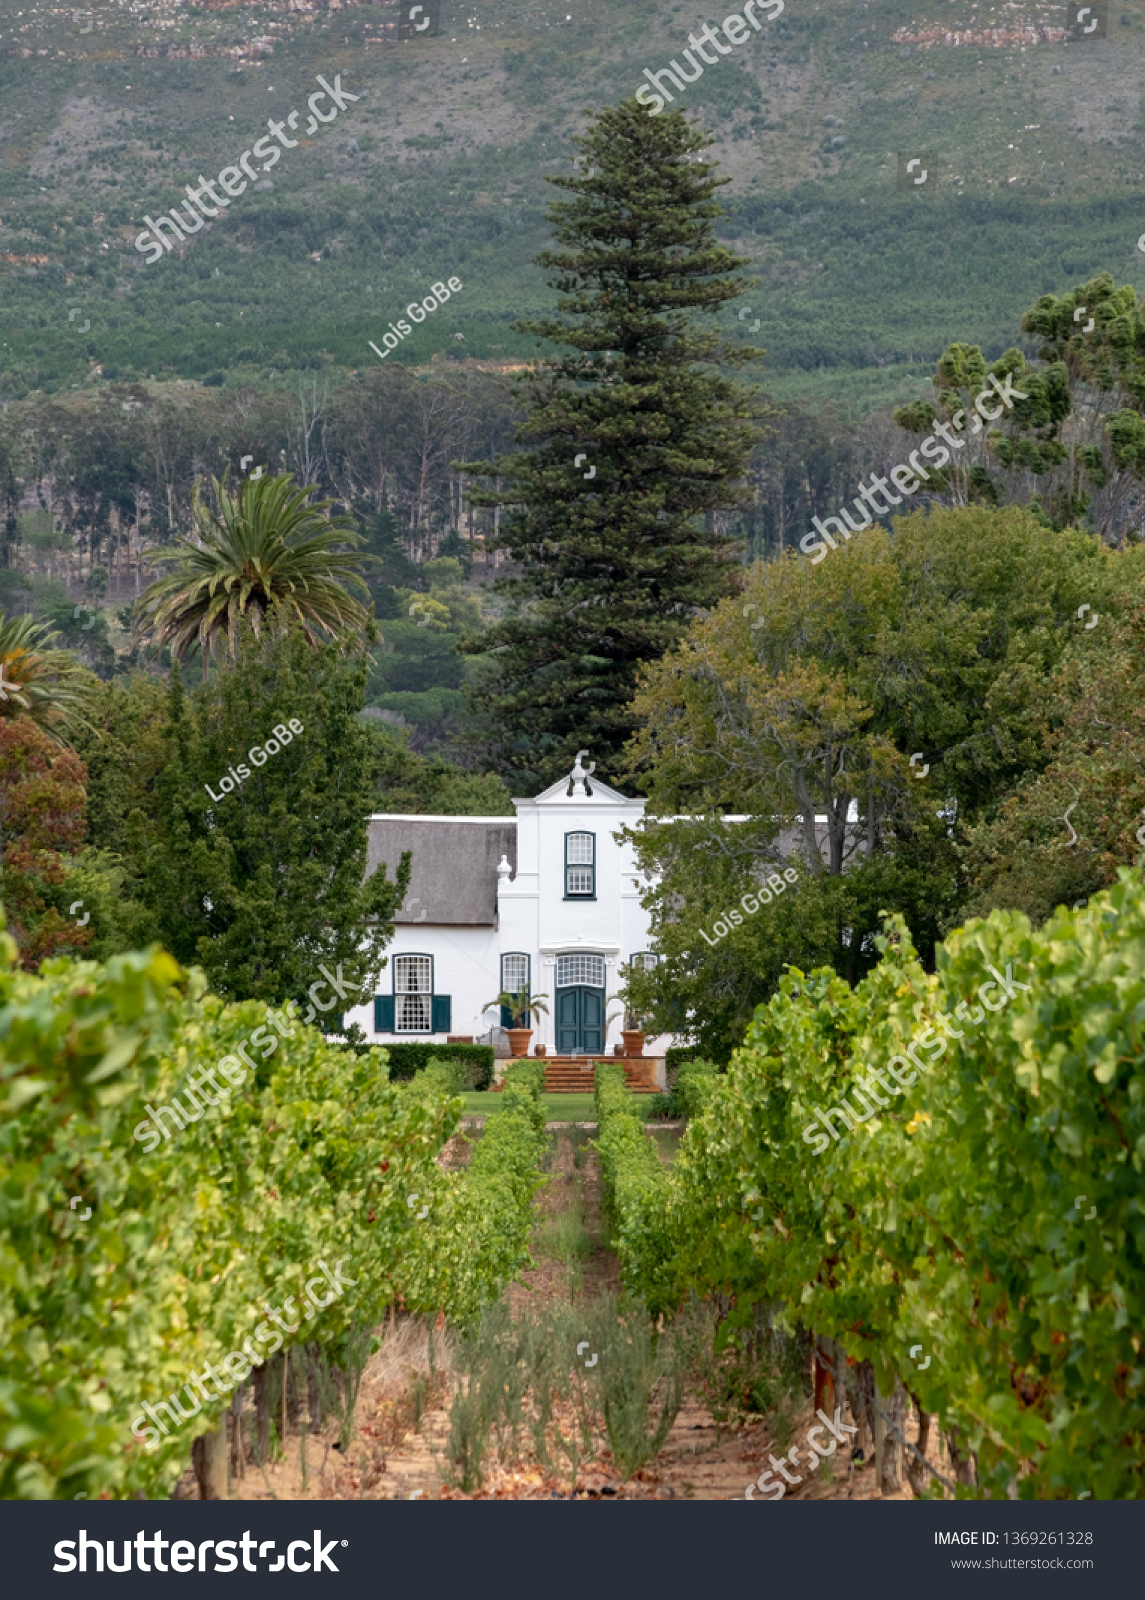 Cape Dutch style farm building at Groot Constantia, Cape Town, South Africa, with vineyard in the foreground and mountains in the background.  #1369261328